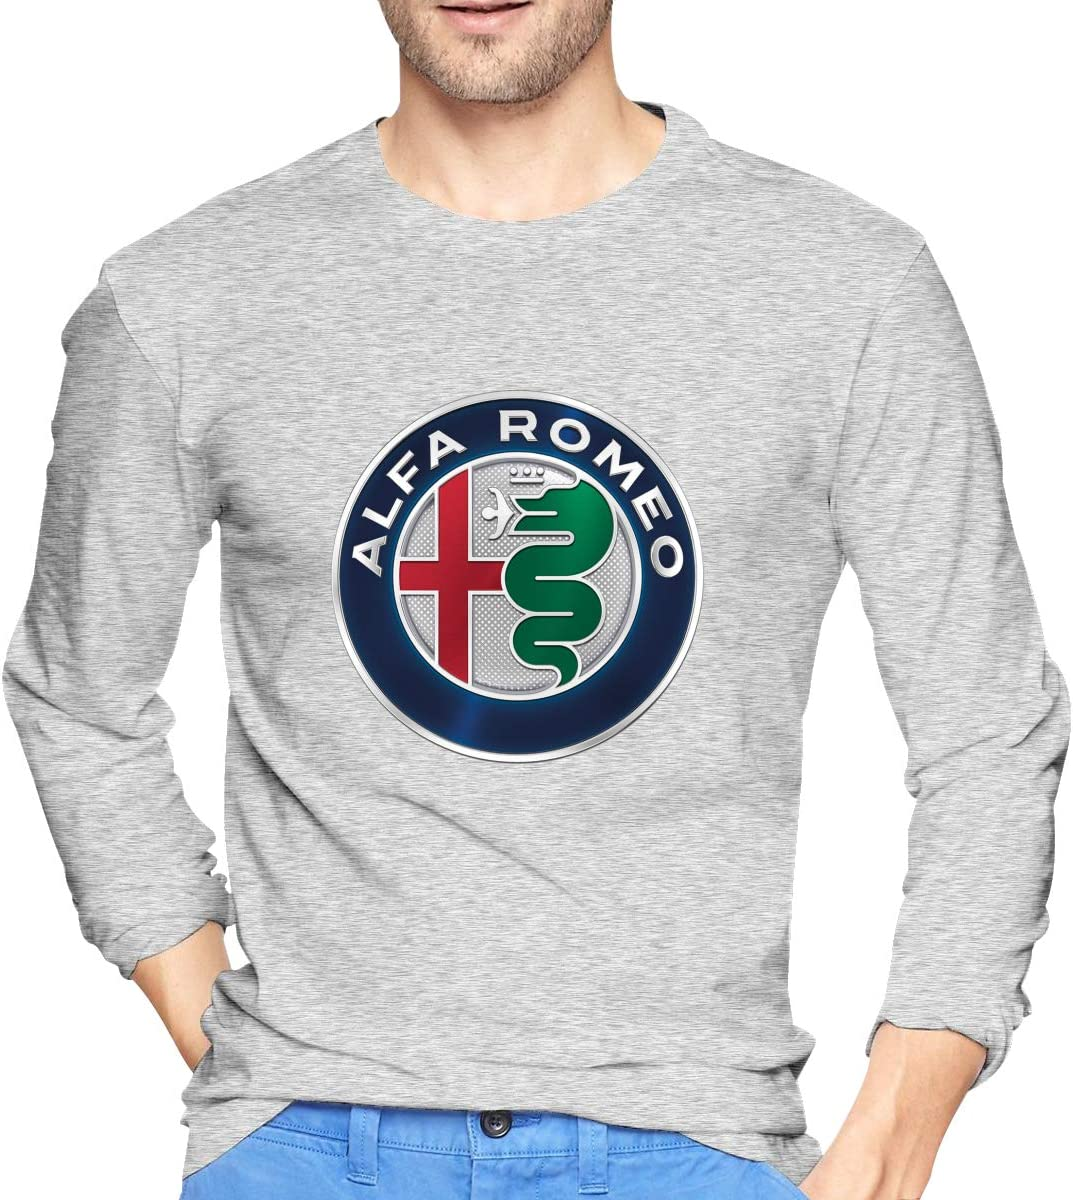 POP-Front Mens T-Shirts Al-FA Ro-meo Long Sleeve Raglan Baseball Tees 71hAwbTXQfL